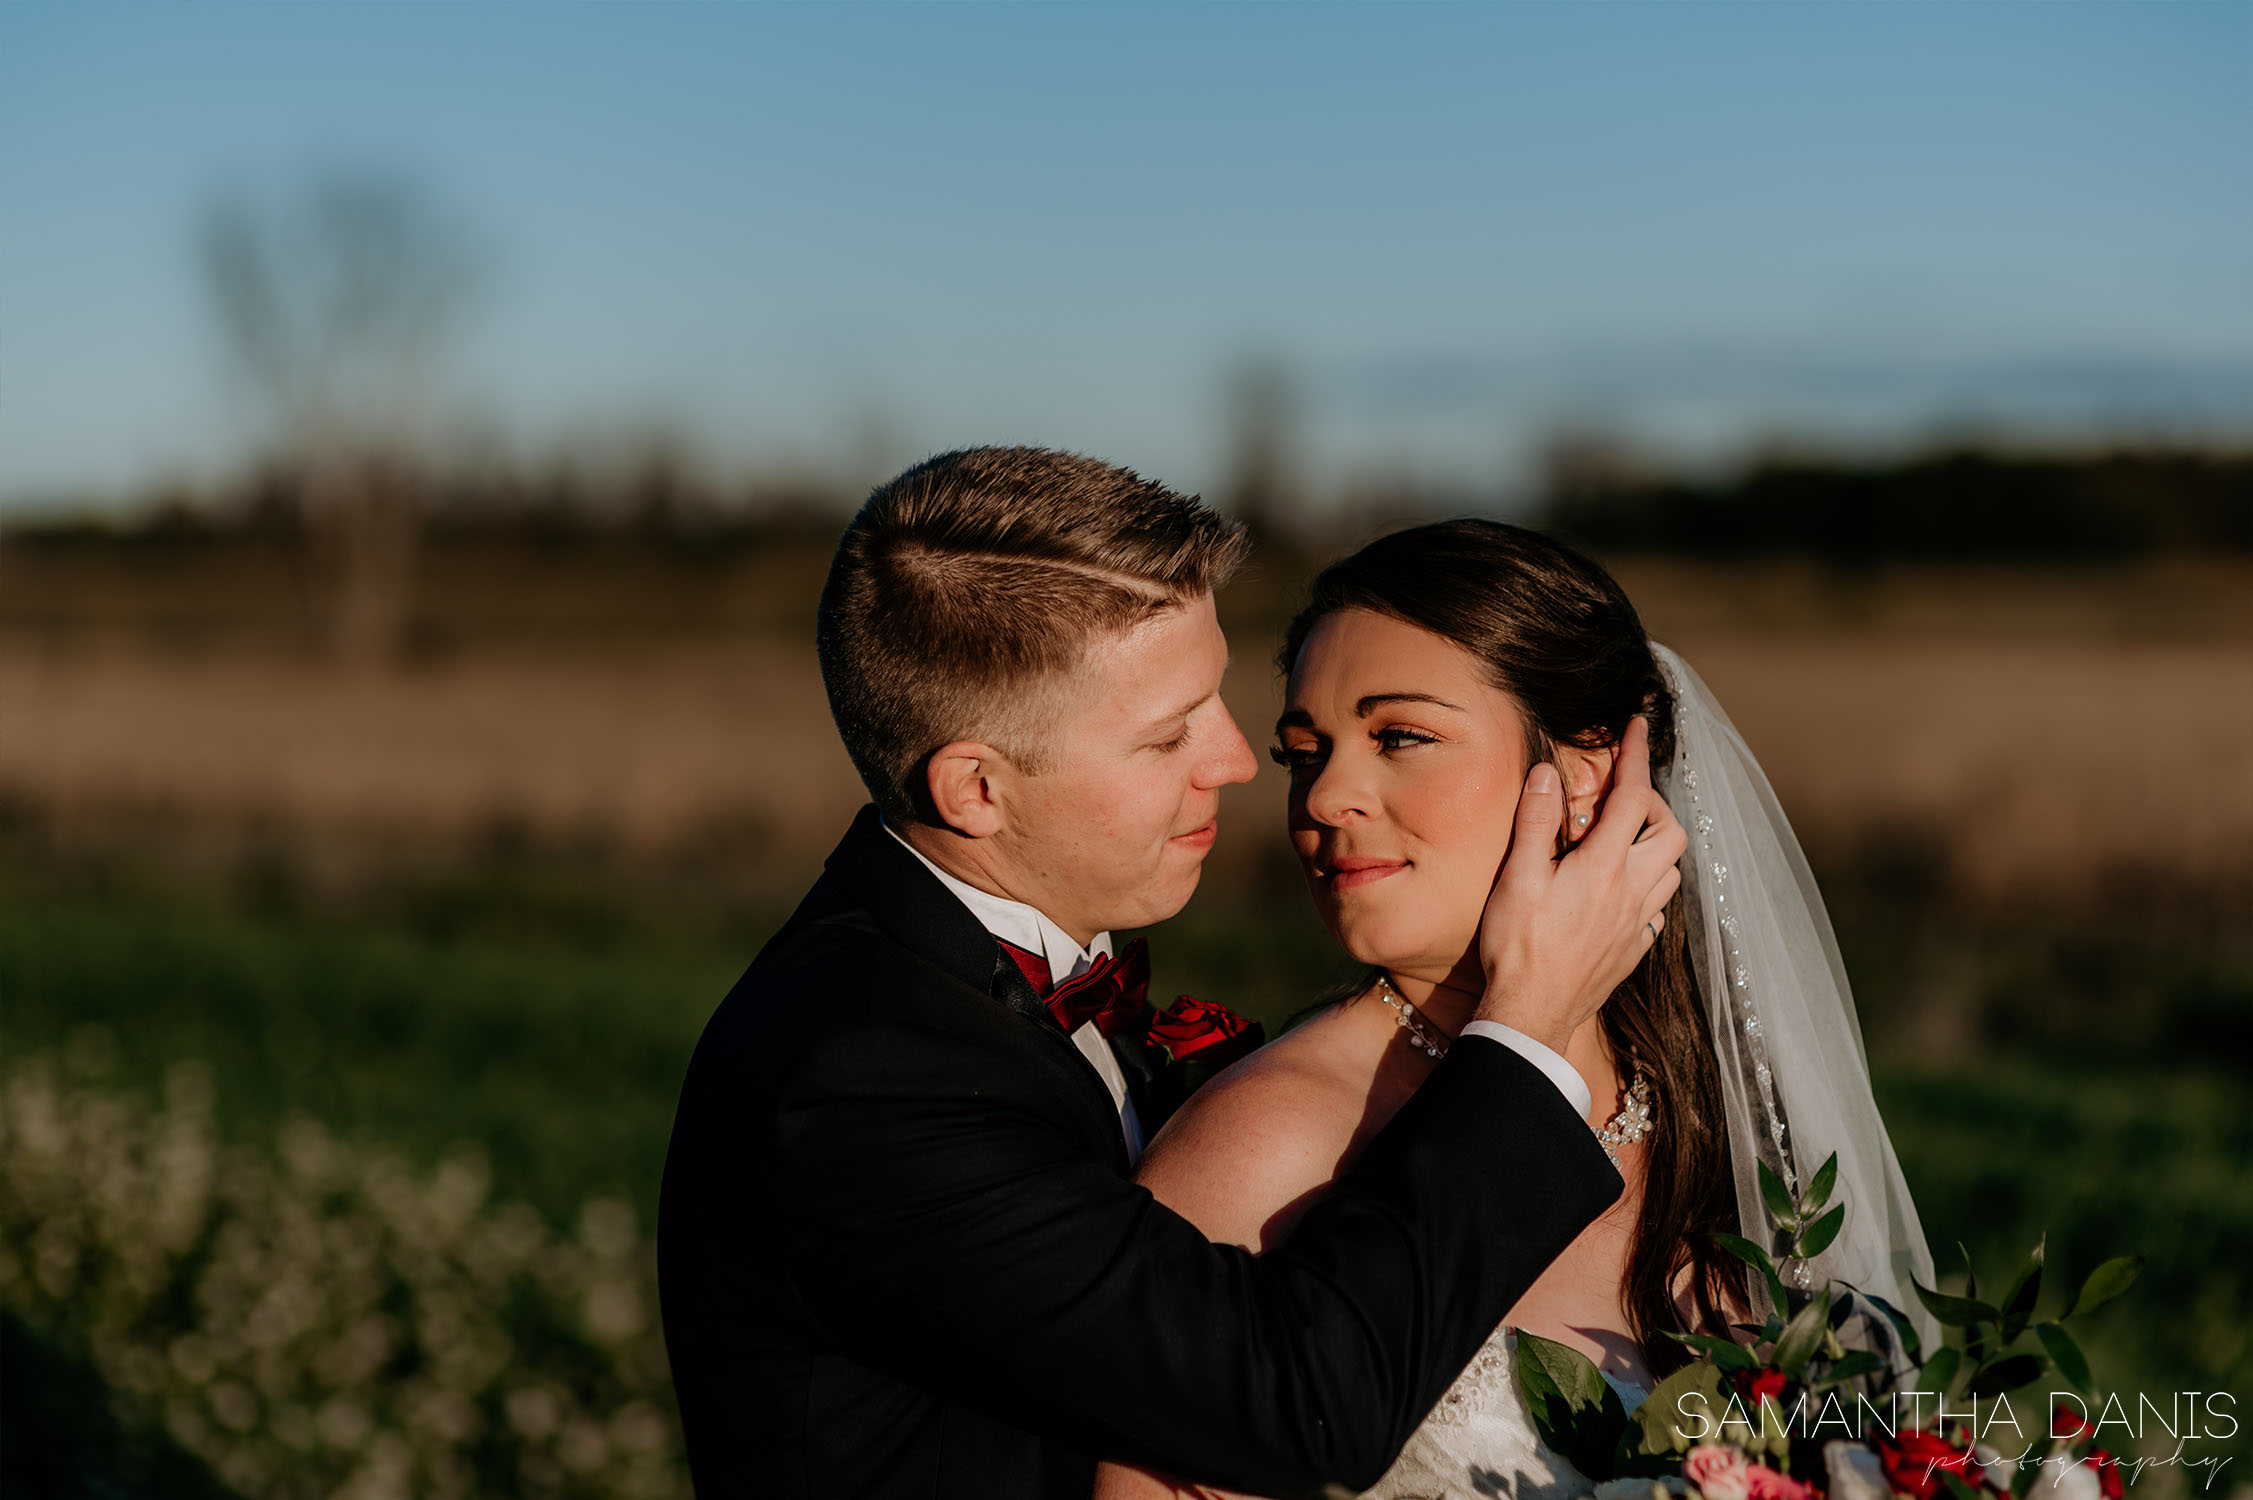 field cuddles at Strathmere Ottawa Wedding venue Samantha Danis Photography